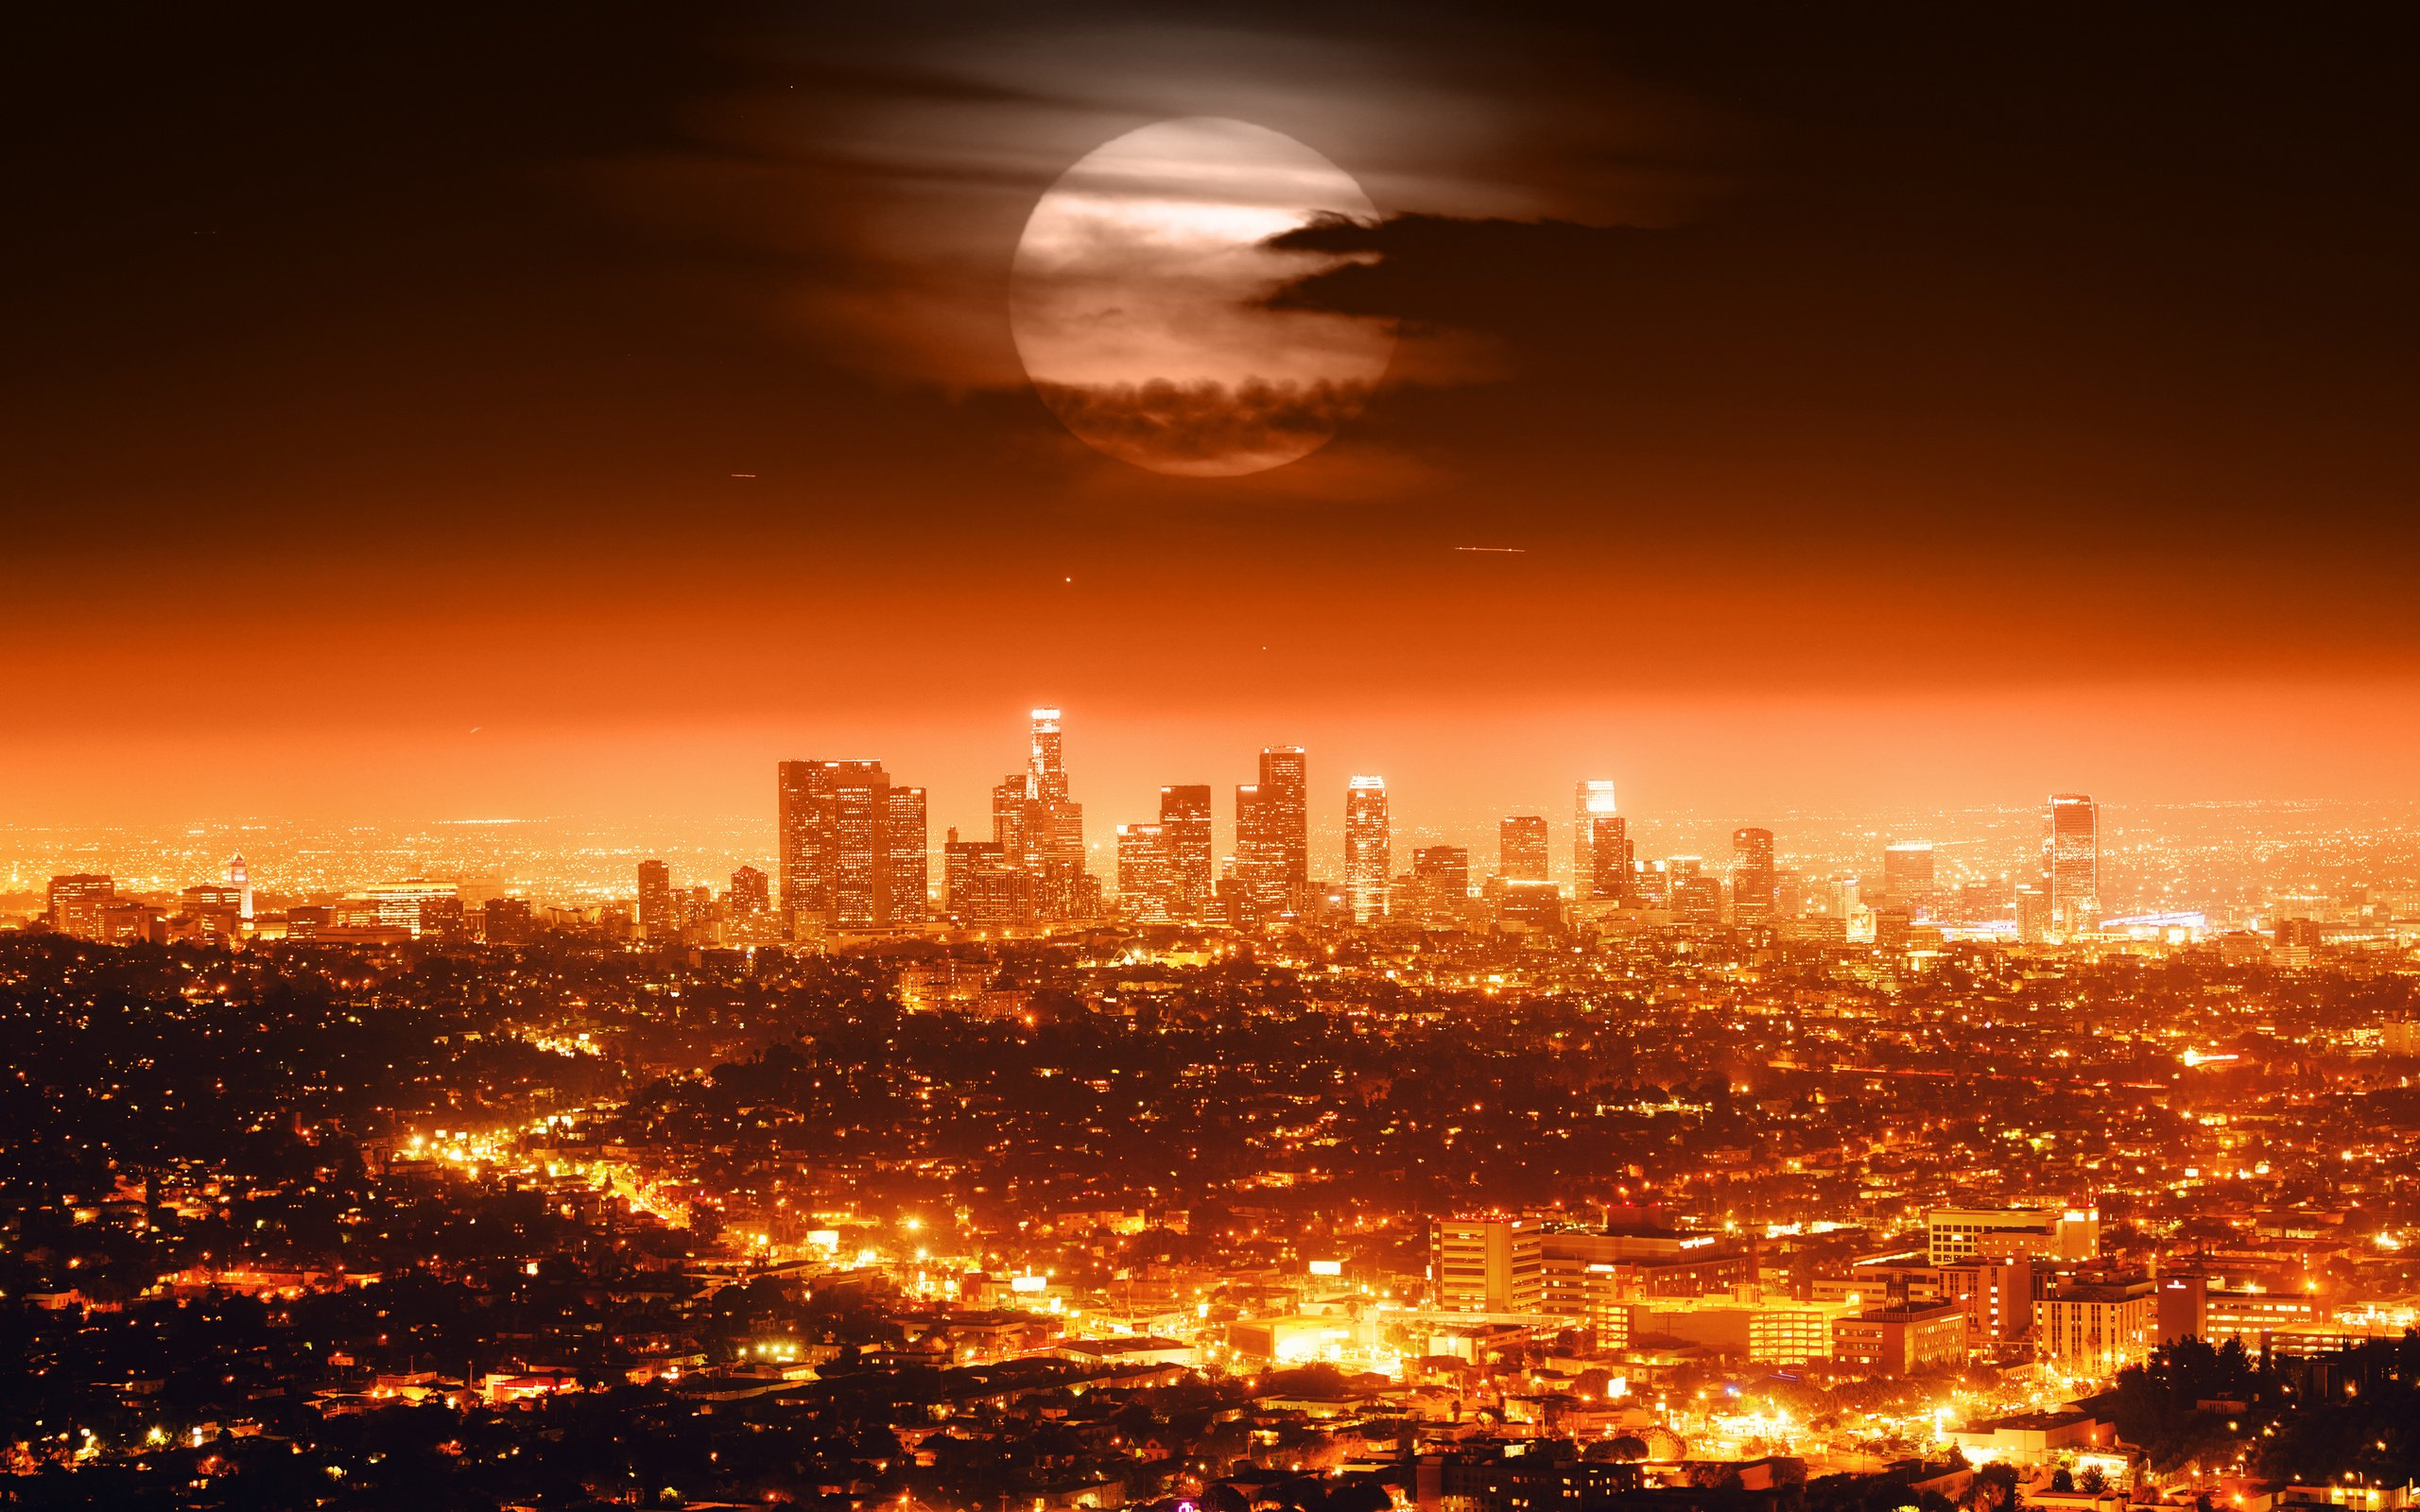 City At Night With Moon